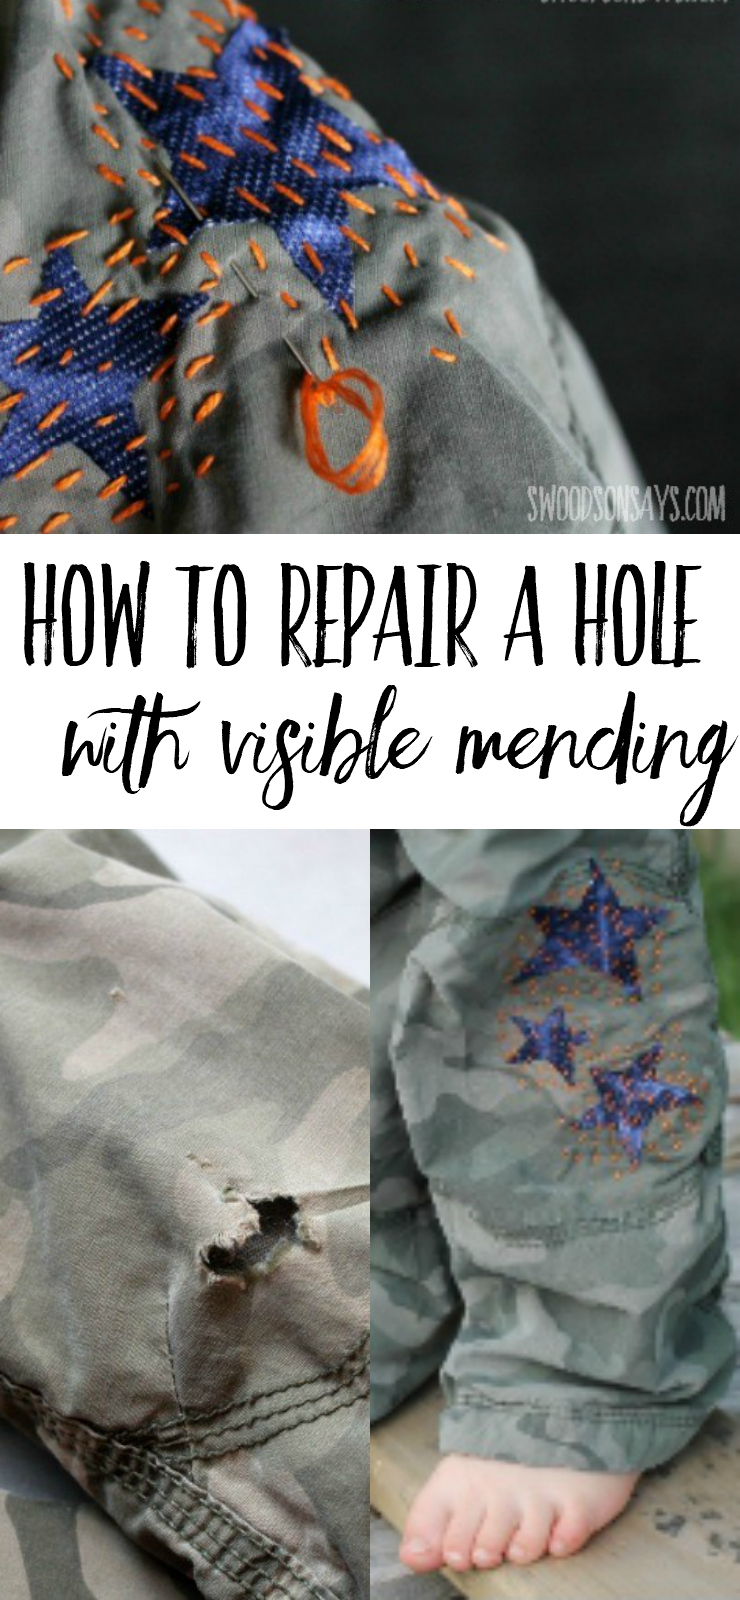 How to mend a hole - use Wonder Under, knit fabric scraps, and sashiko stitching to mend a pants hole. Visible mending is a fun trend - show off those stitches and give old clothes new life! #mending